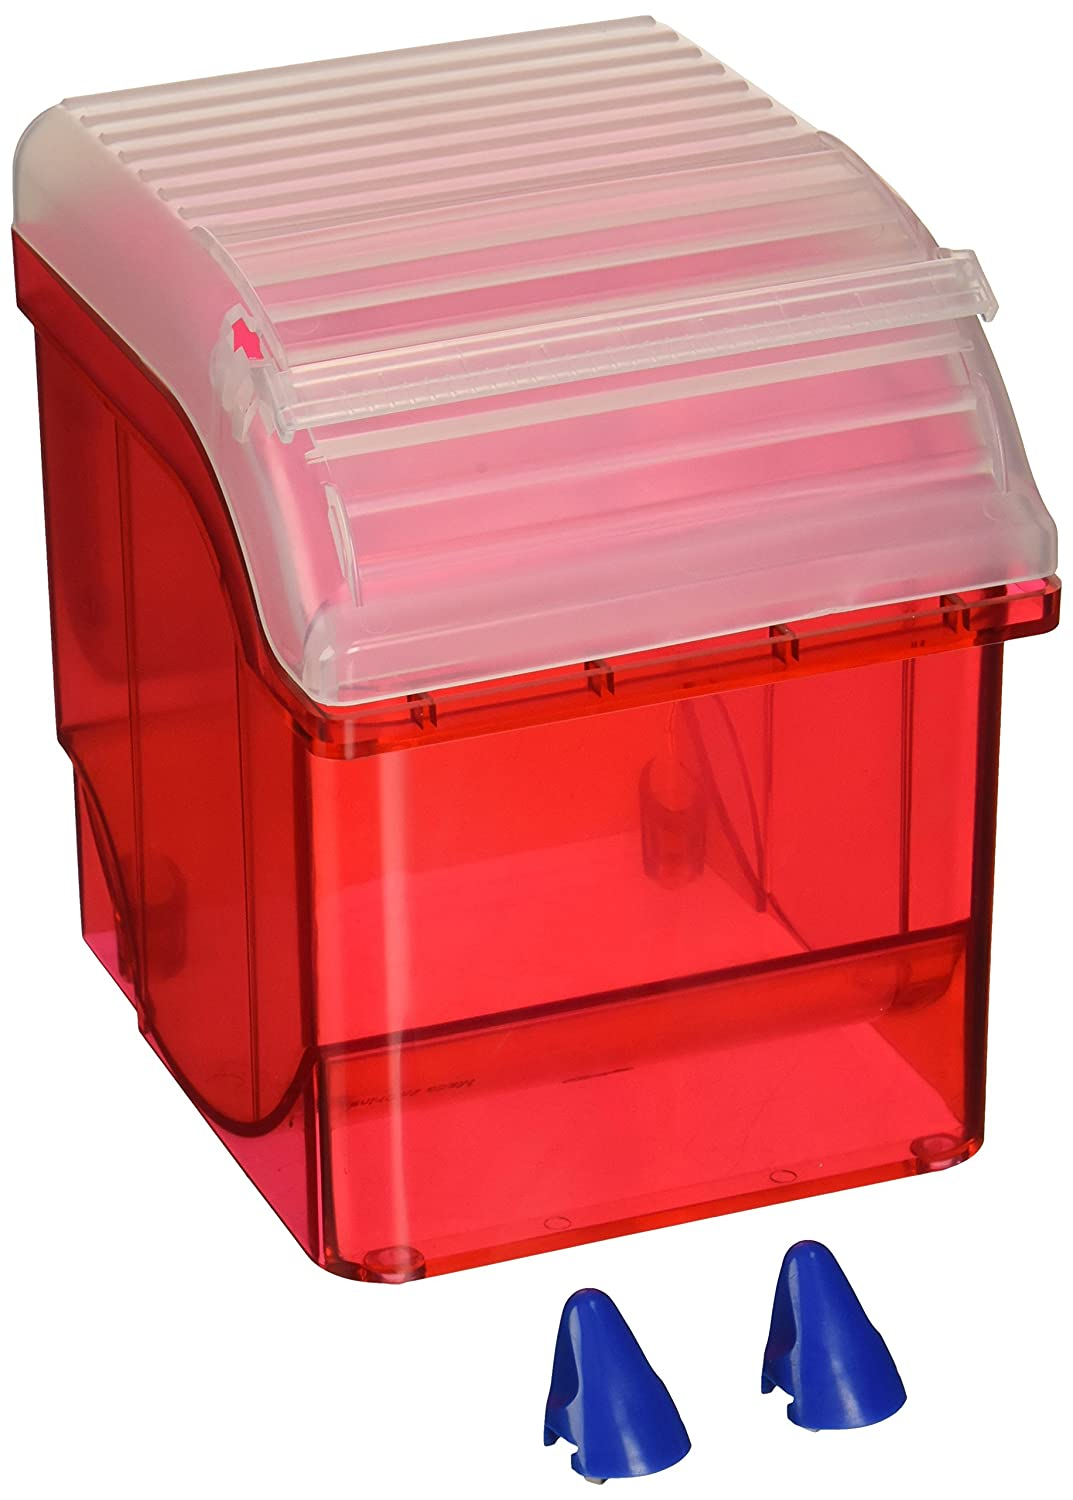 Heathrow HS234525D ABS Parafilm Dispenser, Red